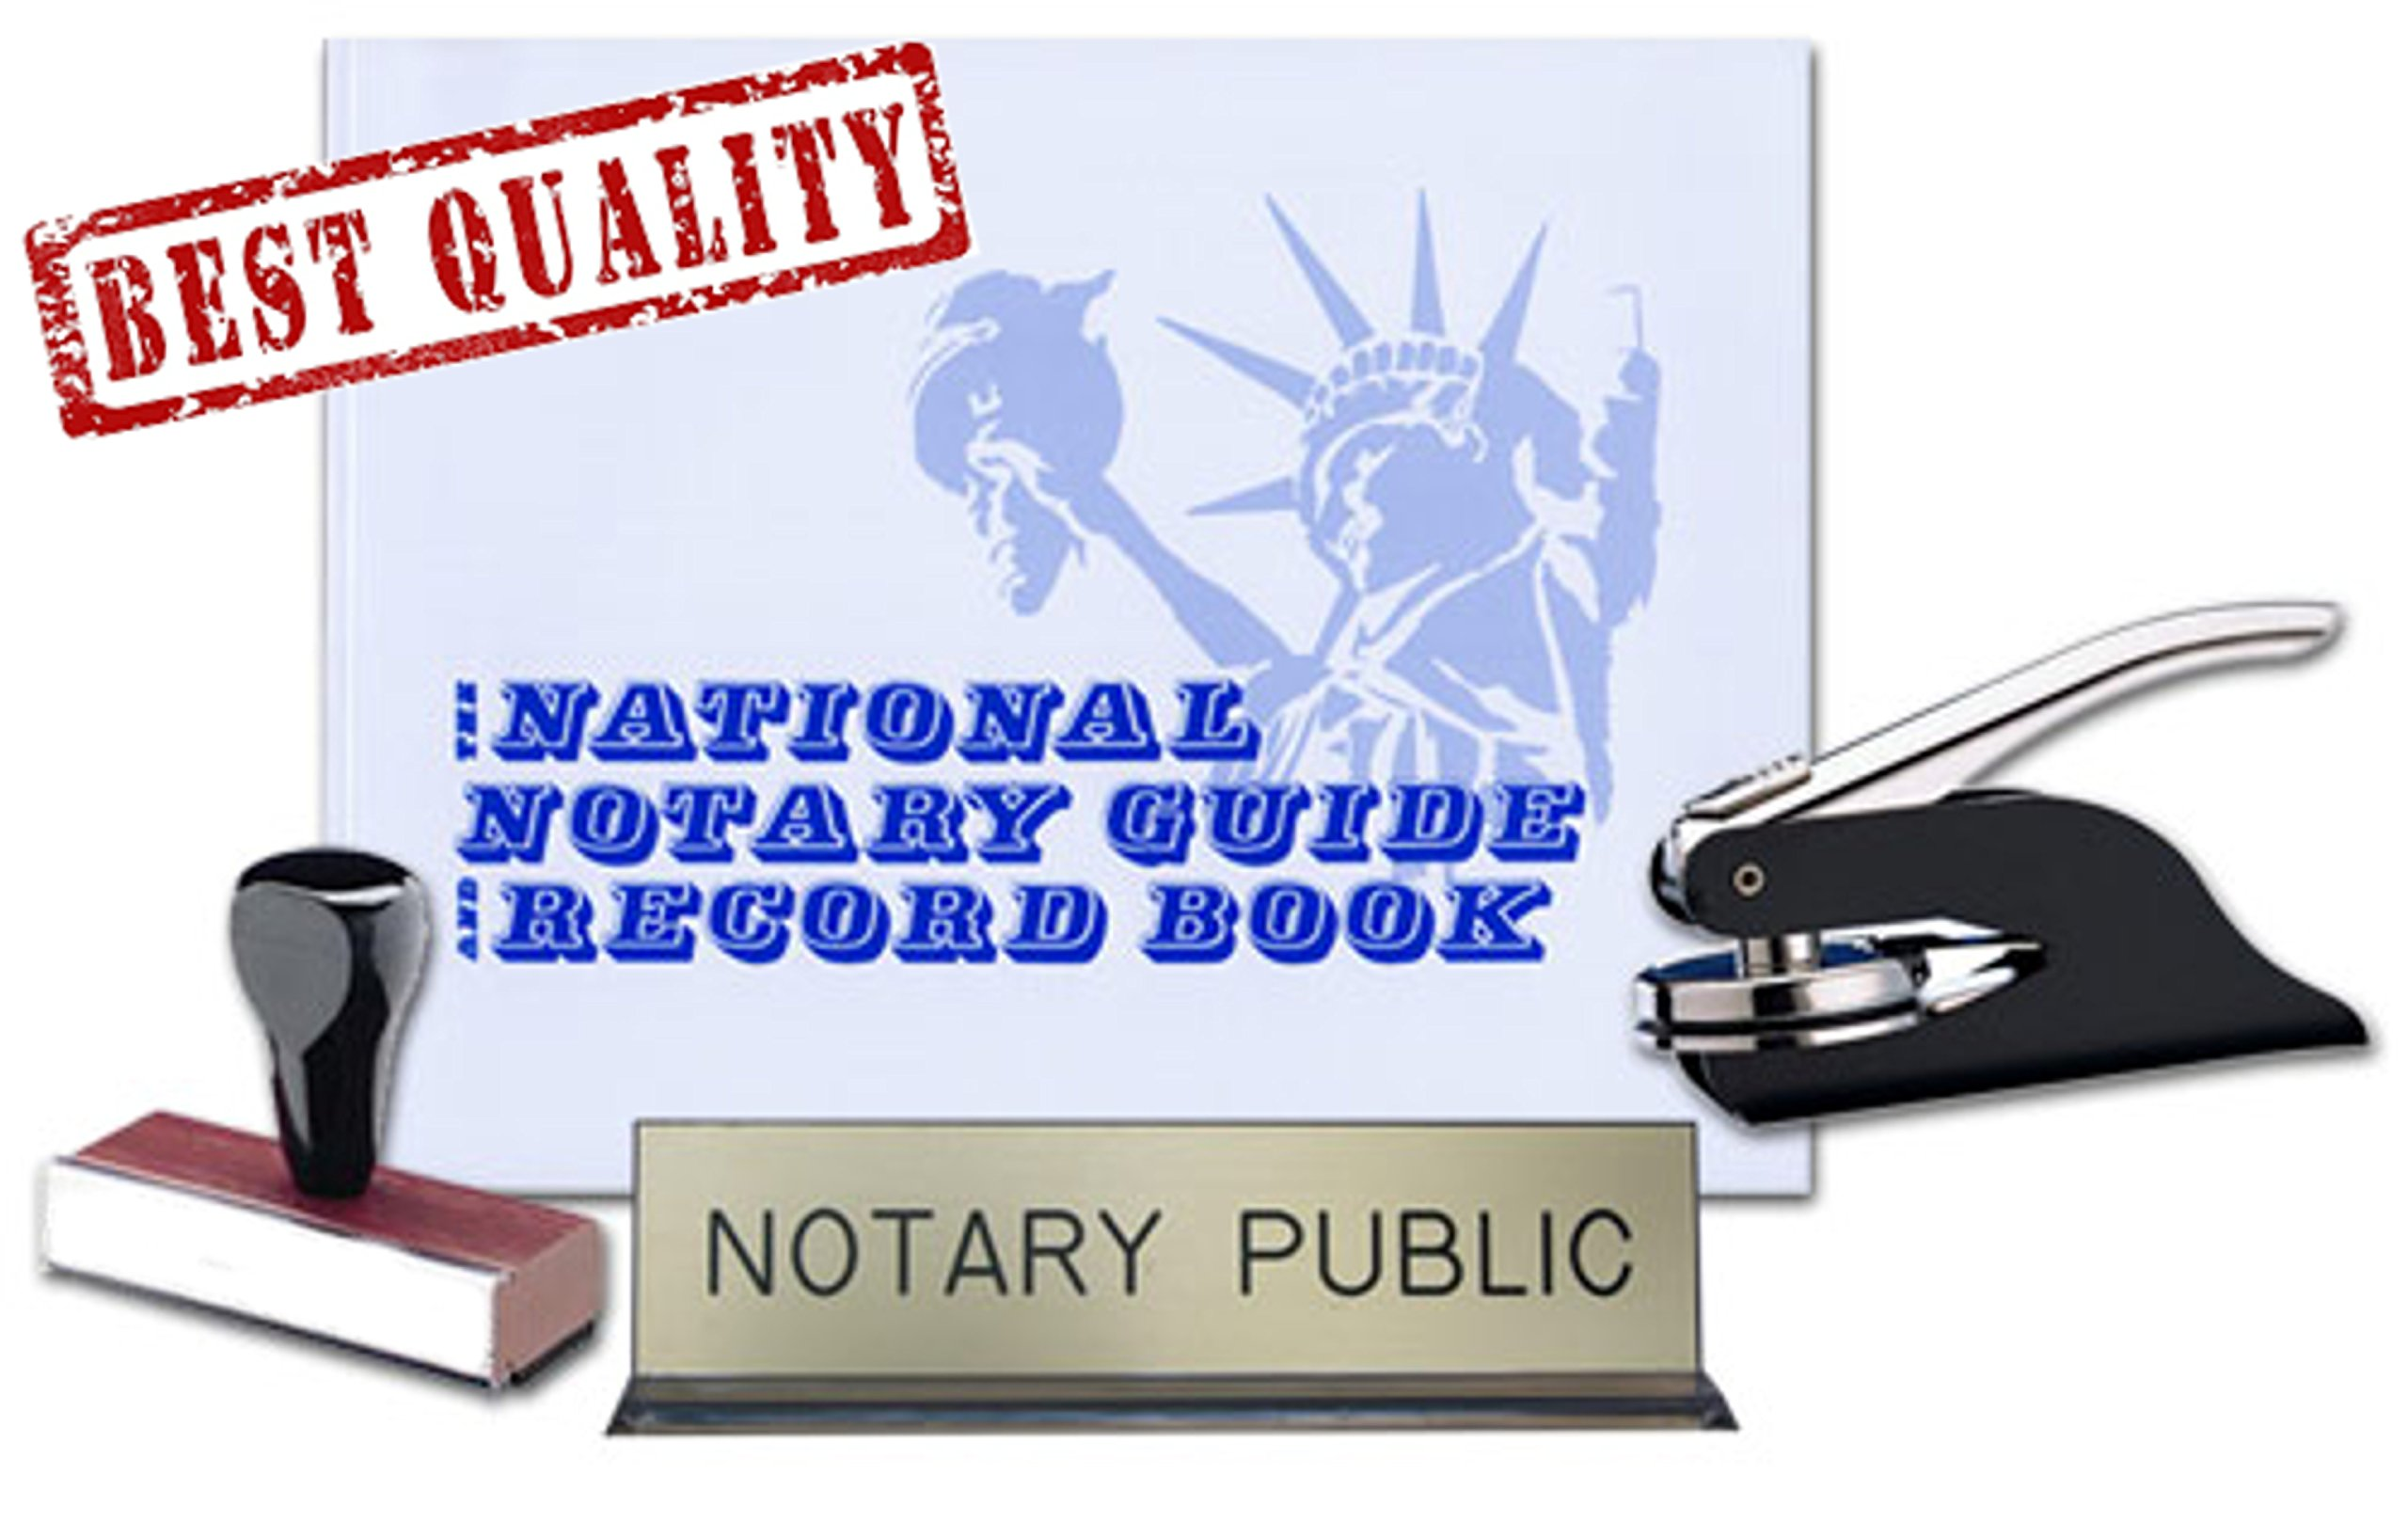 Wyoming Notary Public Desk Sign, Record Book, Black Pocket Seal Embosser, Traditional Rubber Hand Stamp Value Package